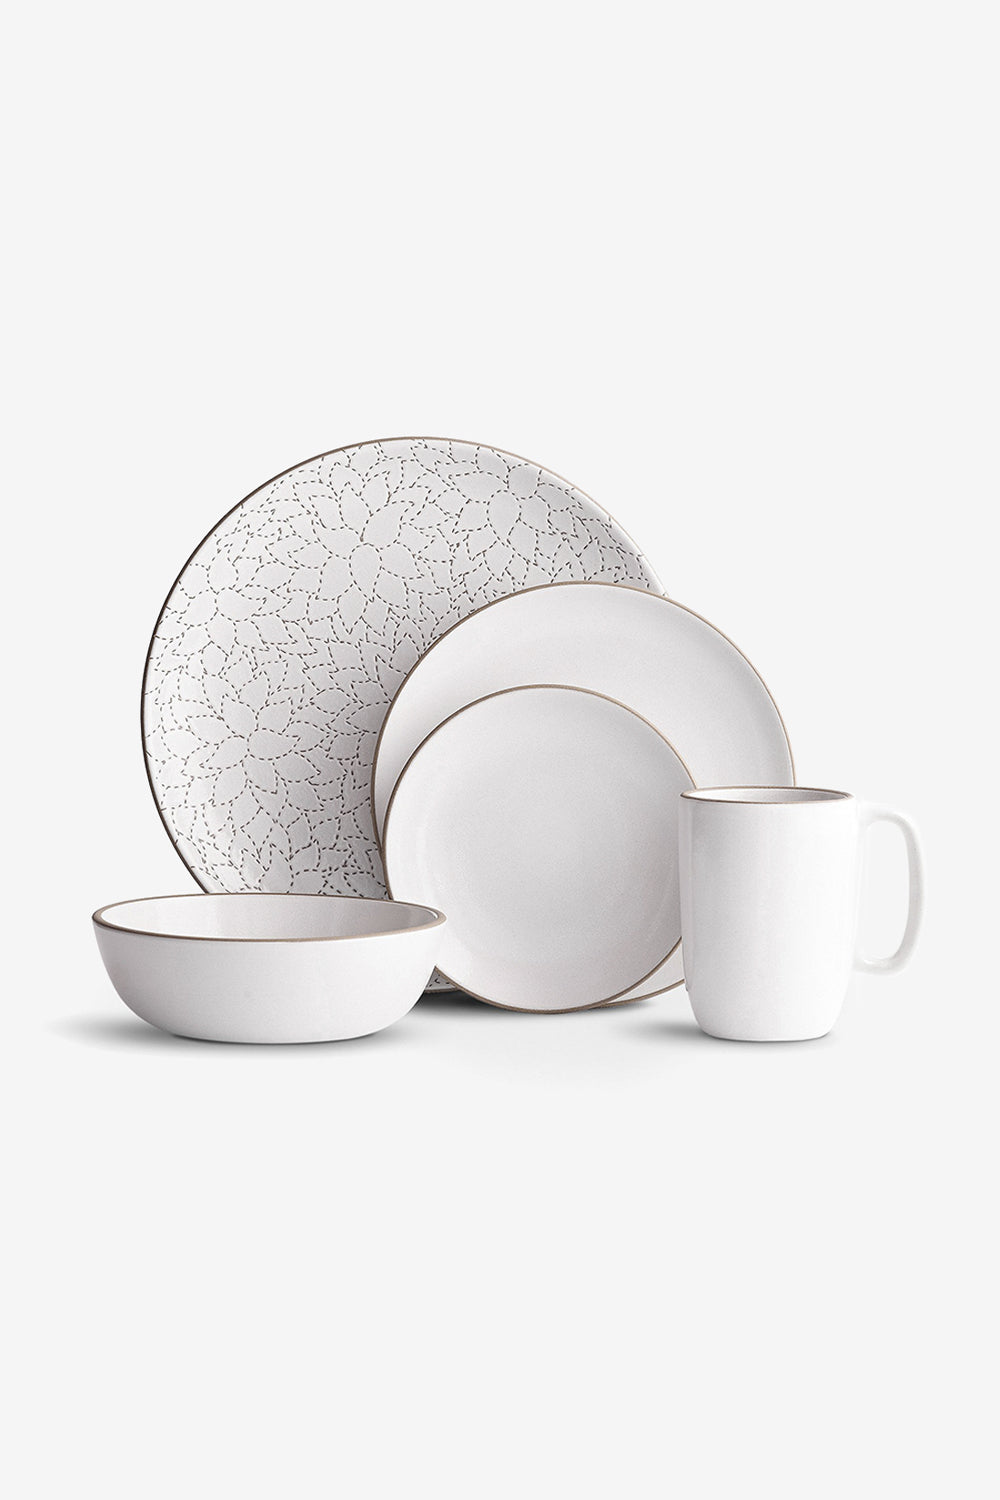 Alabama Chanin Camellia Etched Dinner Plate Hand-Etched Dinnerware Set in Opaque White and White Floral